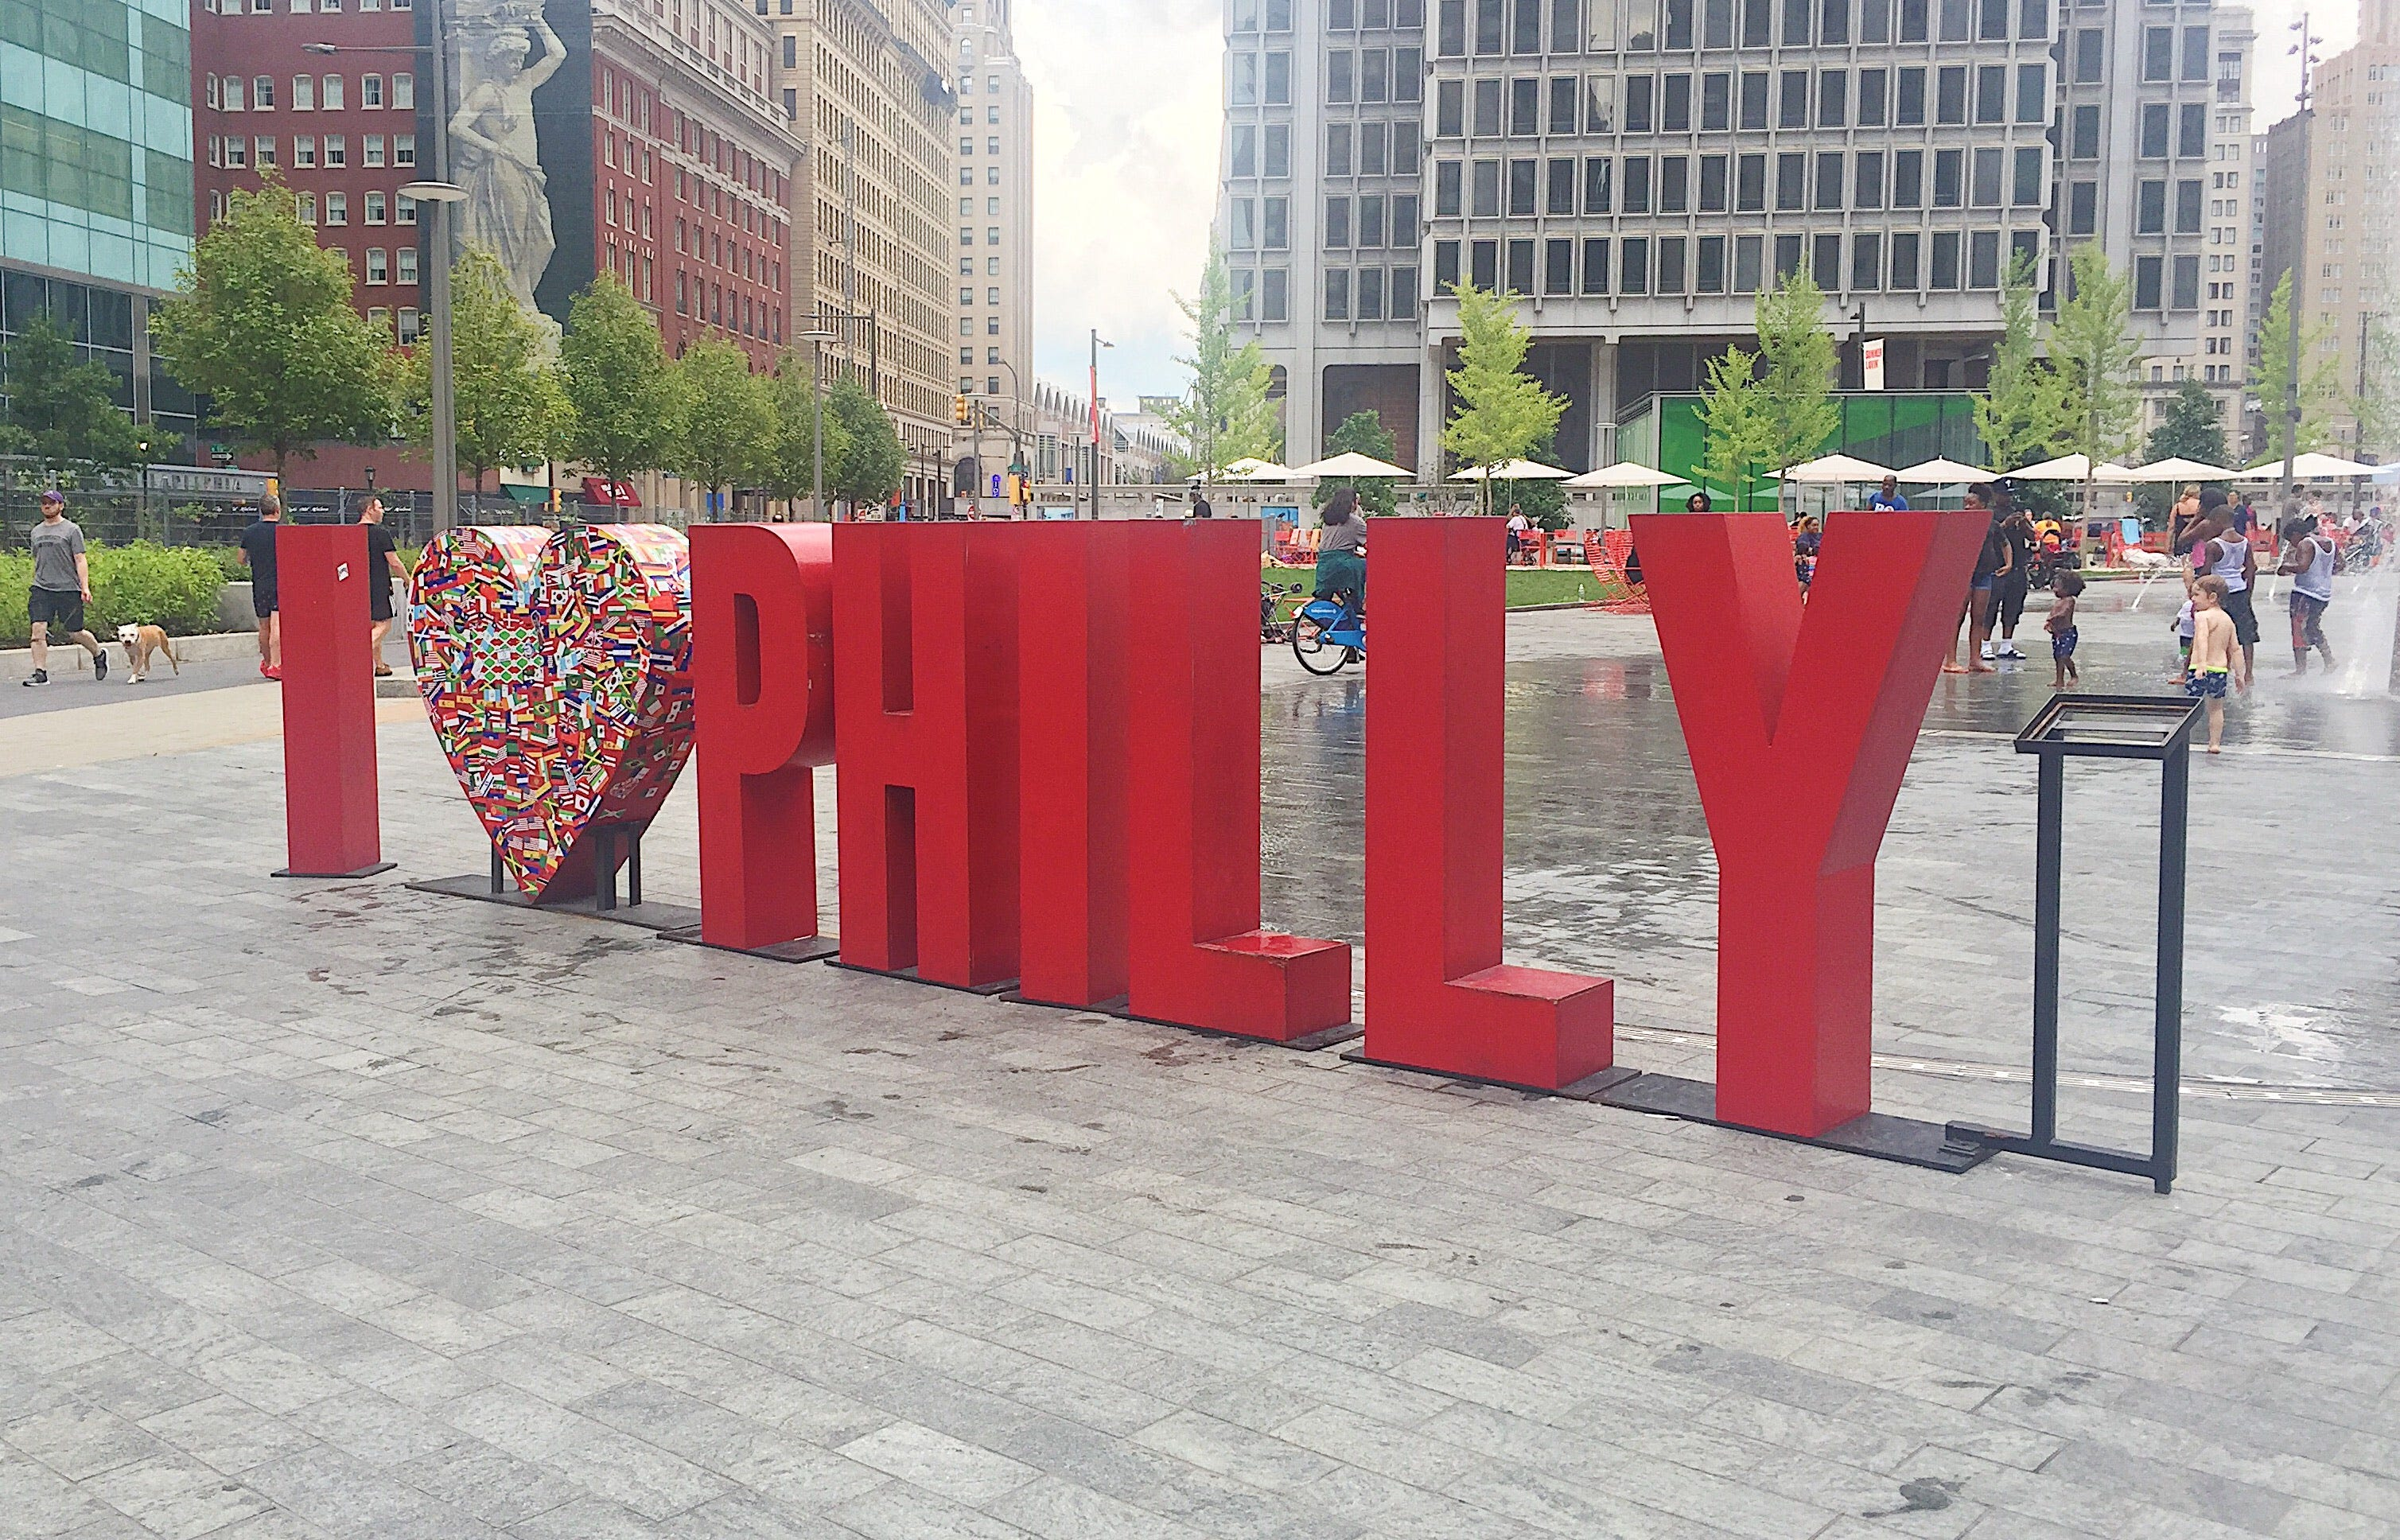 5 things to do on your first trip to Philadelphia beyond the Liberty Bell